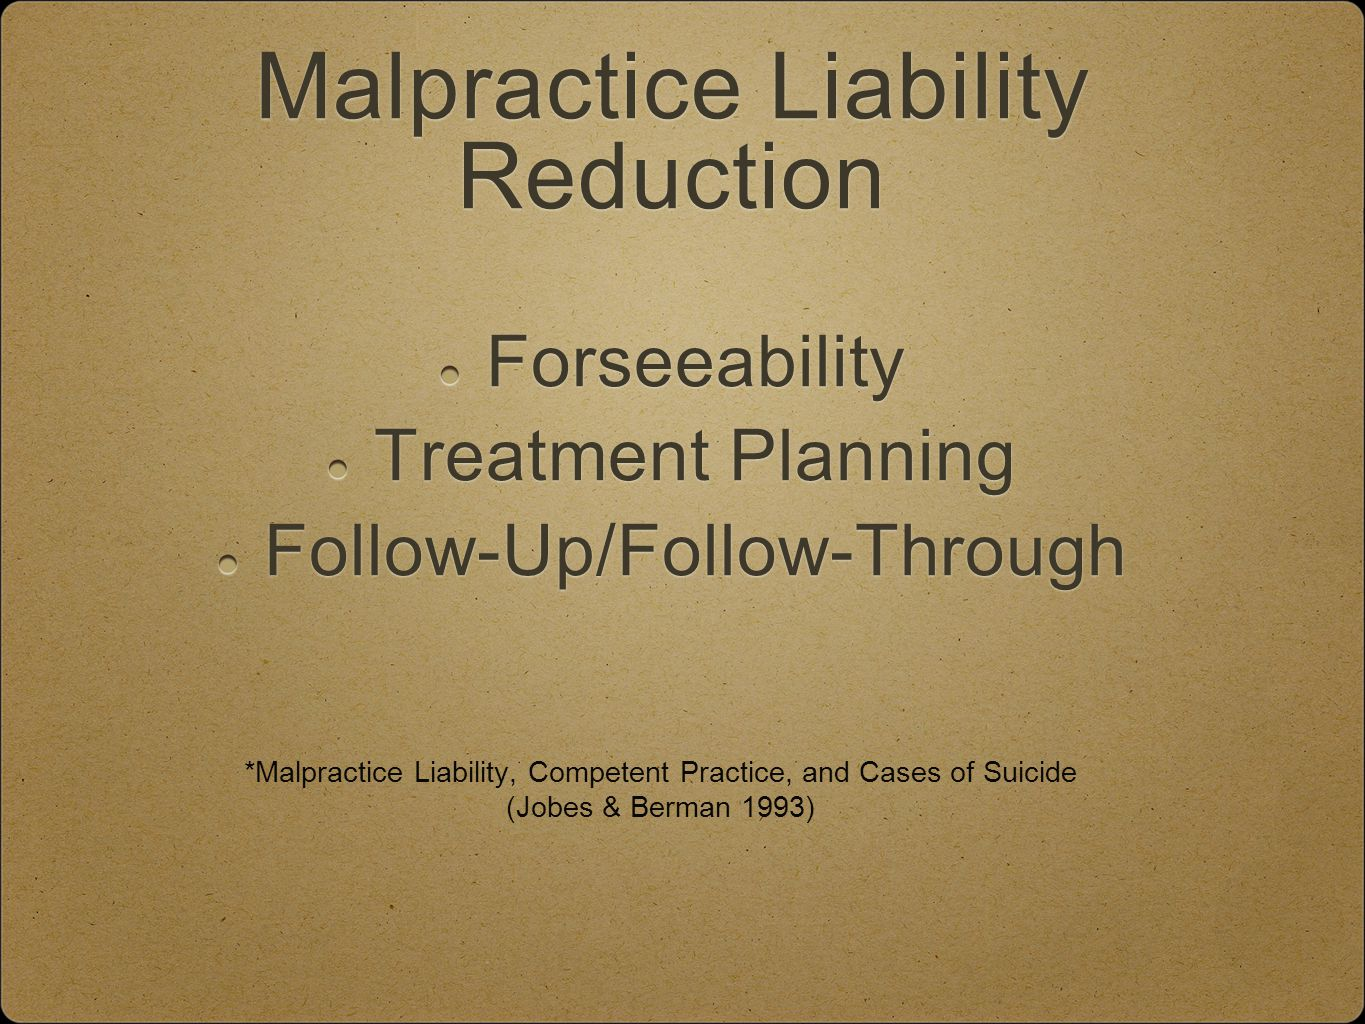 Malpractice Liability Reduction Forseeability Treatment Planning Follow-Up/Follow-Through *Malpractice Liability, Competent Practice, and Cases of Suicide (Jobes & Berman 1993)